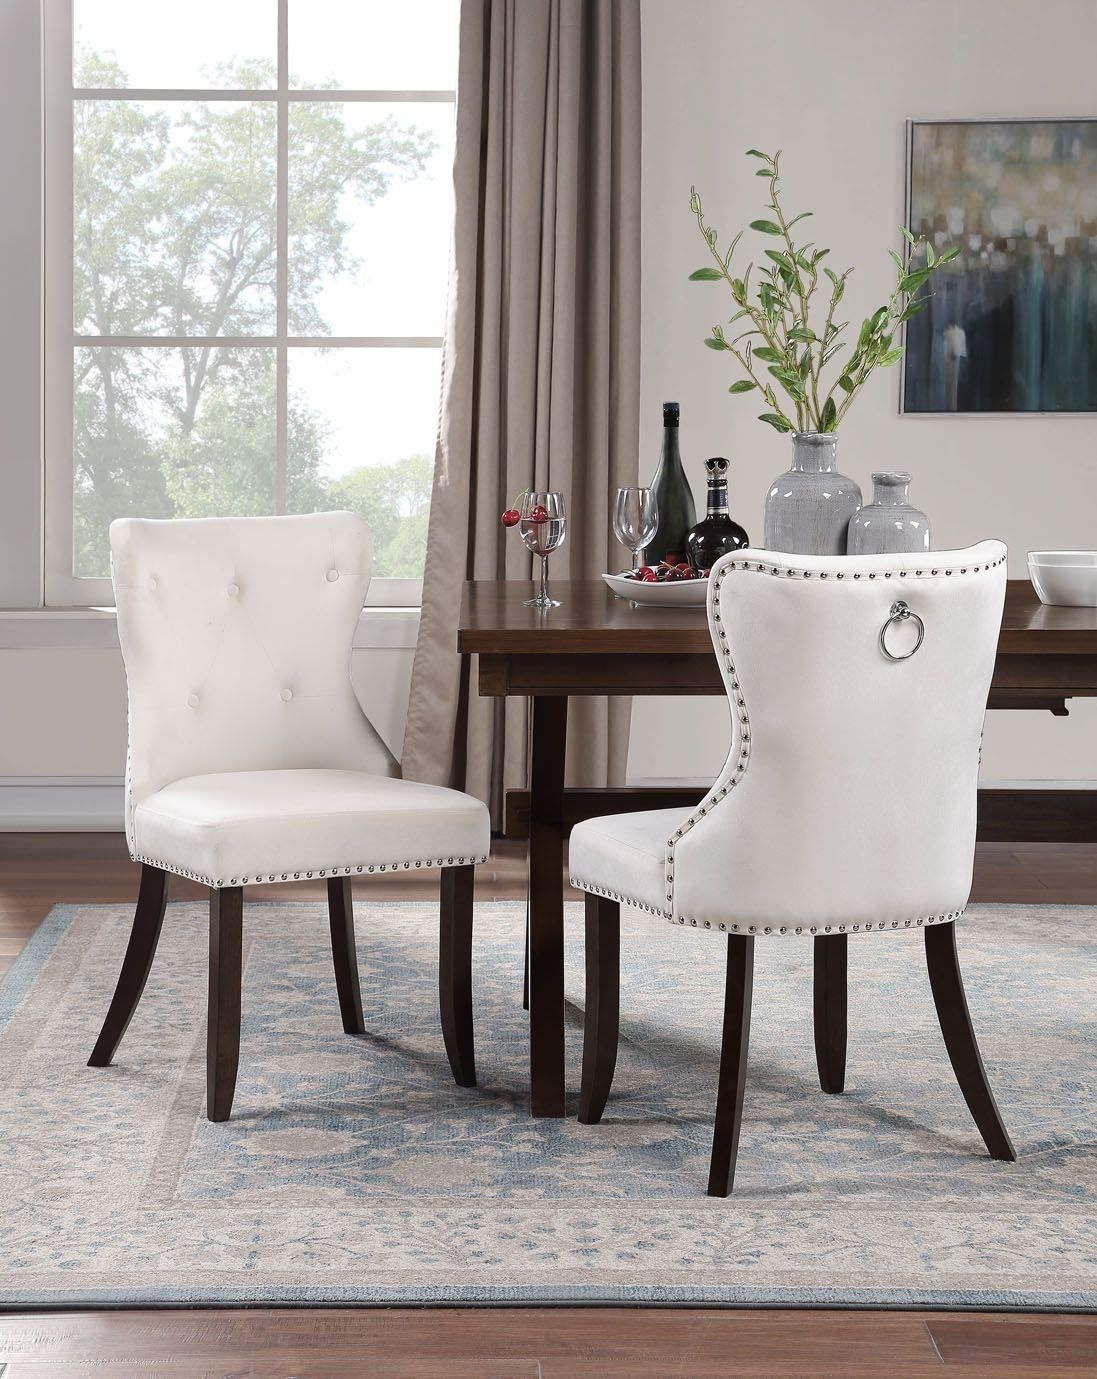 10 Stunning Set Of 2 Chairs For Living Room